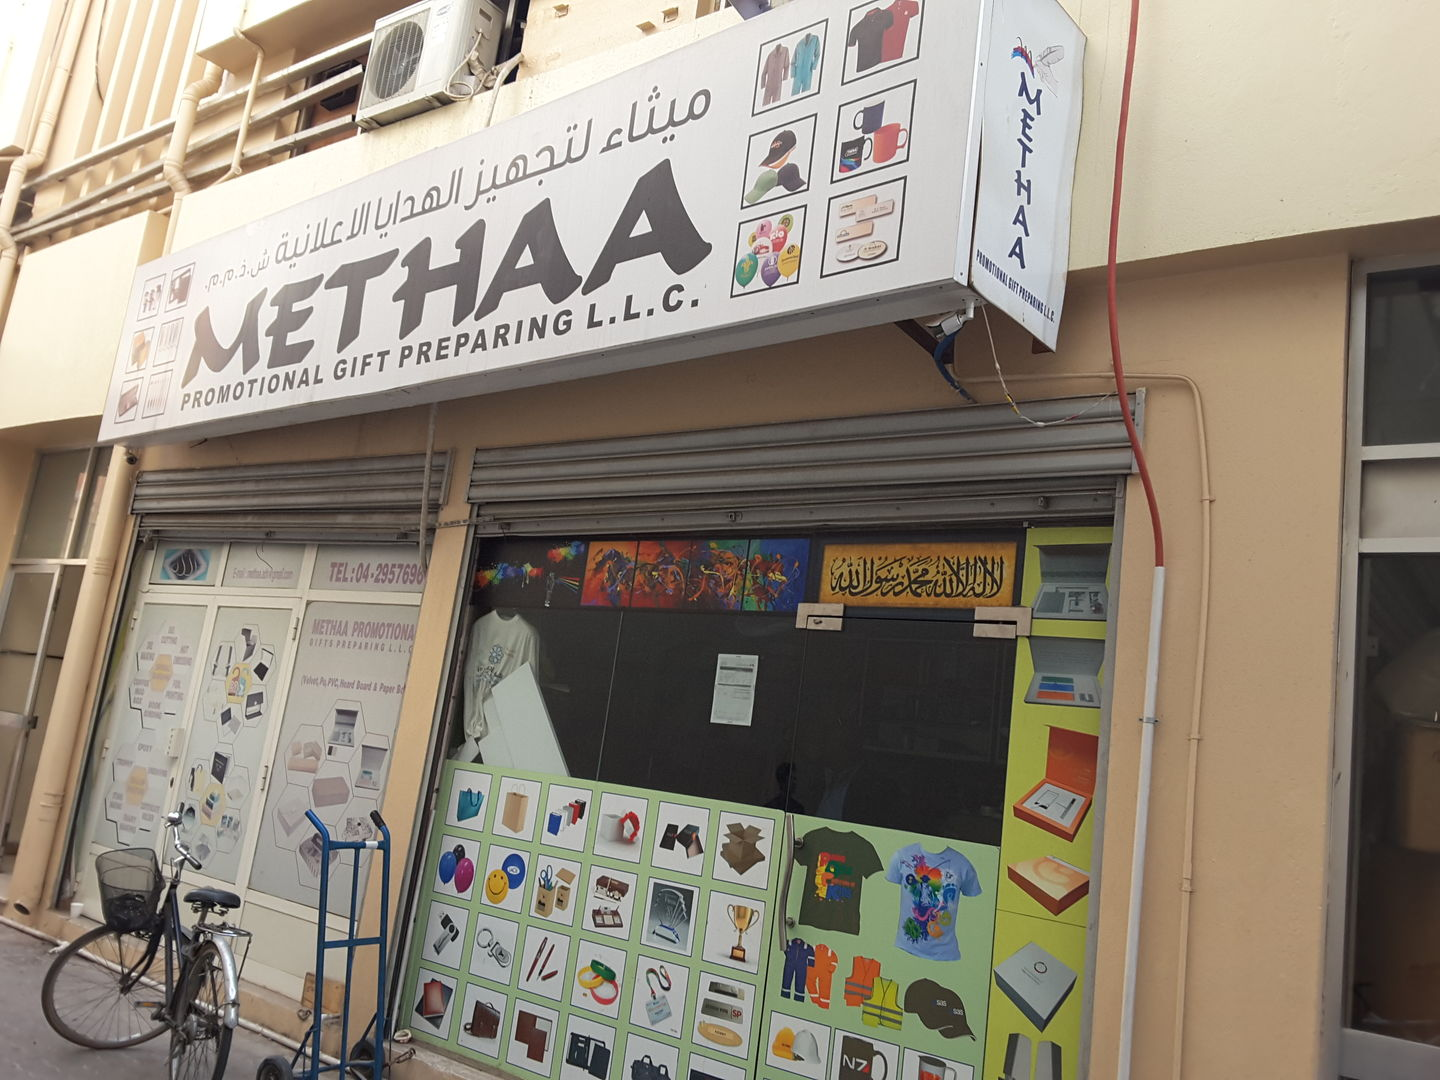 HiDubai-business-methaa-promotional-gifts-preparing-shopping-souvenirs-gifts-al-rigga-dubai-2